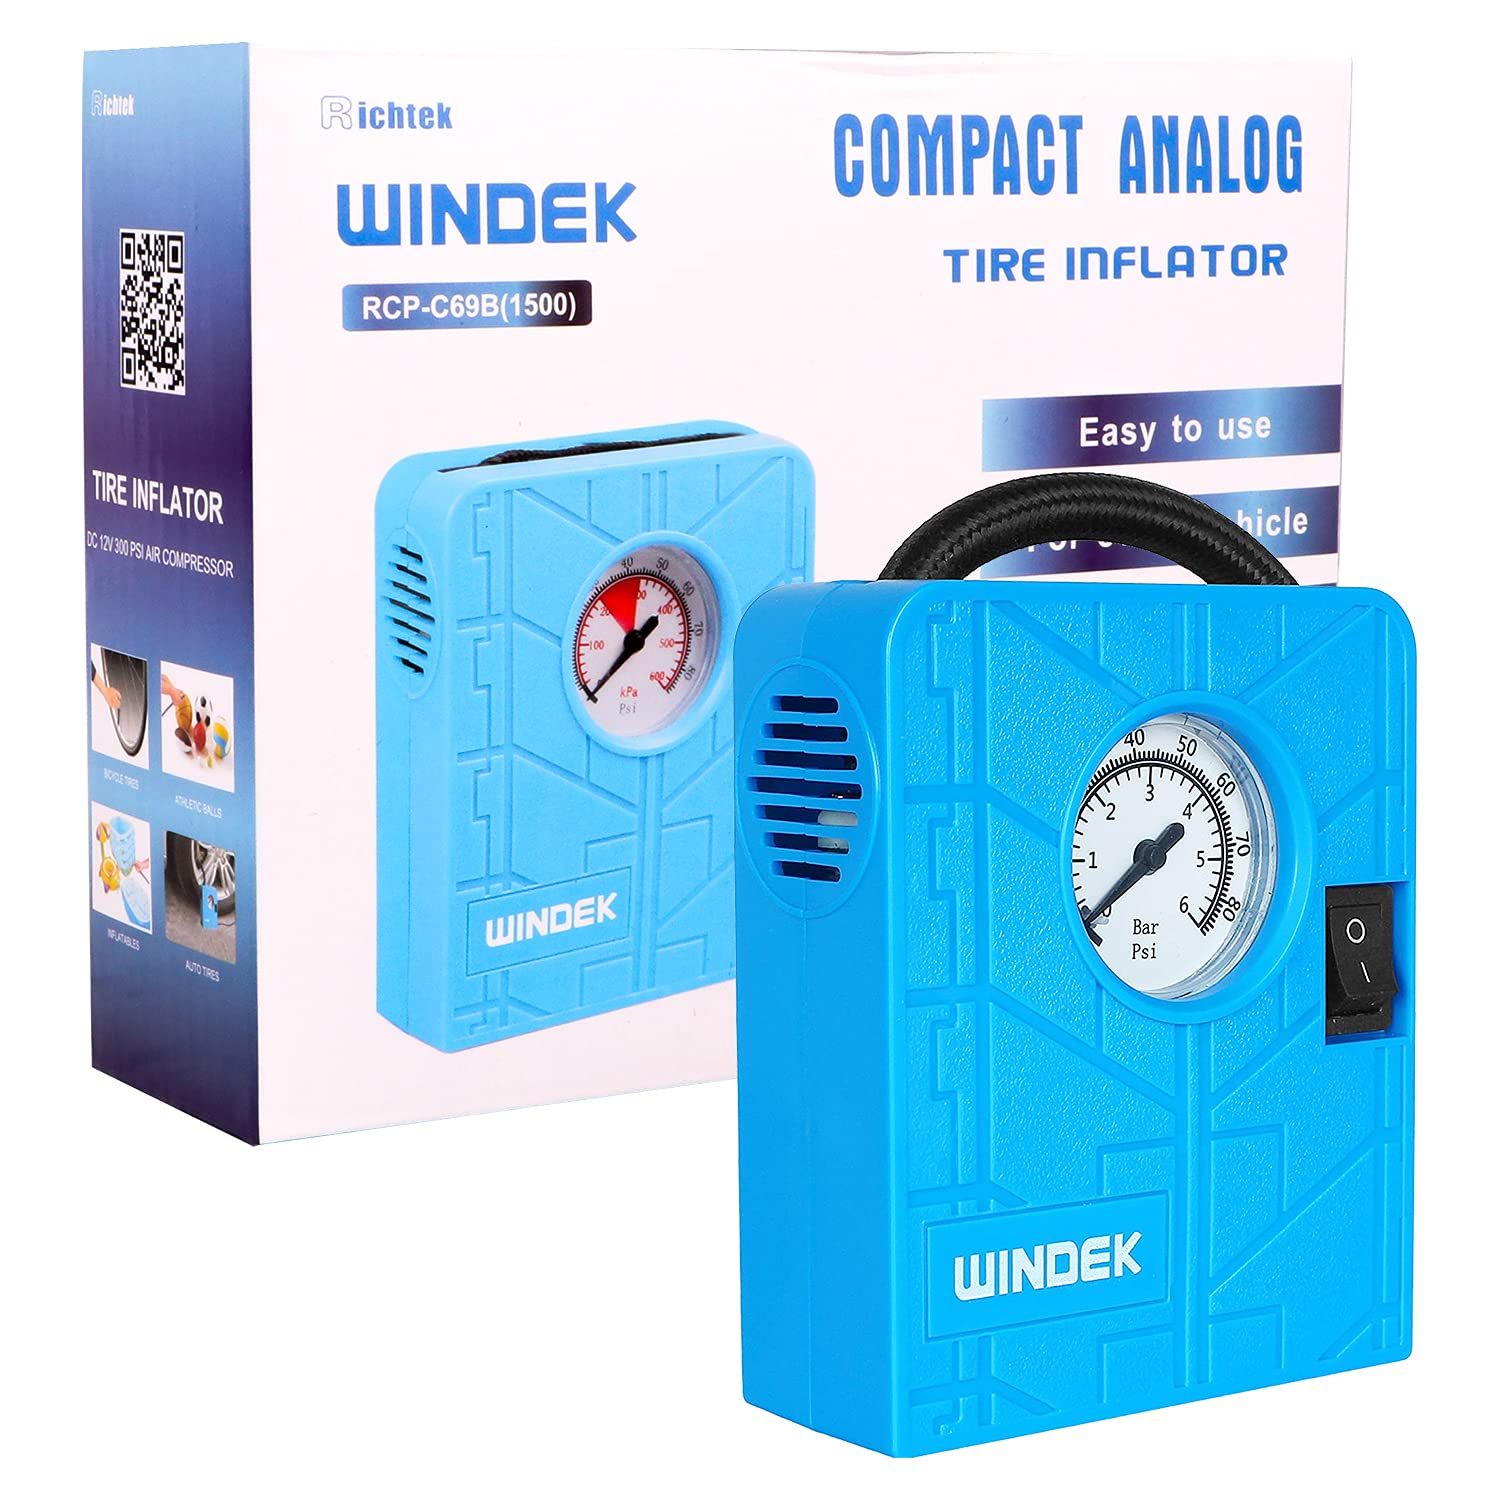 windek-1500-tyre-inflator-with-compact-design-inbuilt-gauge-fast-inflation-air-pump-for-all-car-heavy-duty-vehicle-bike-with-led-light-blue-universal